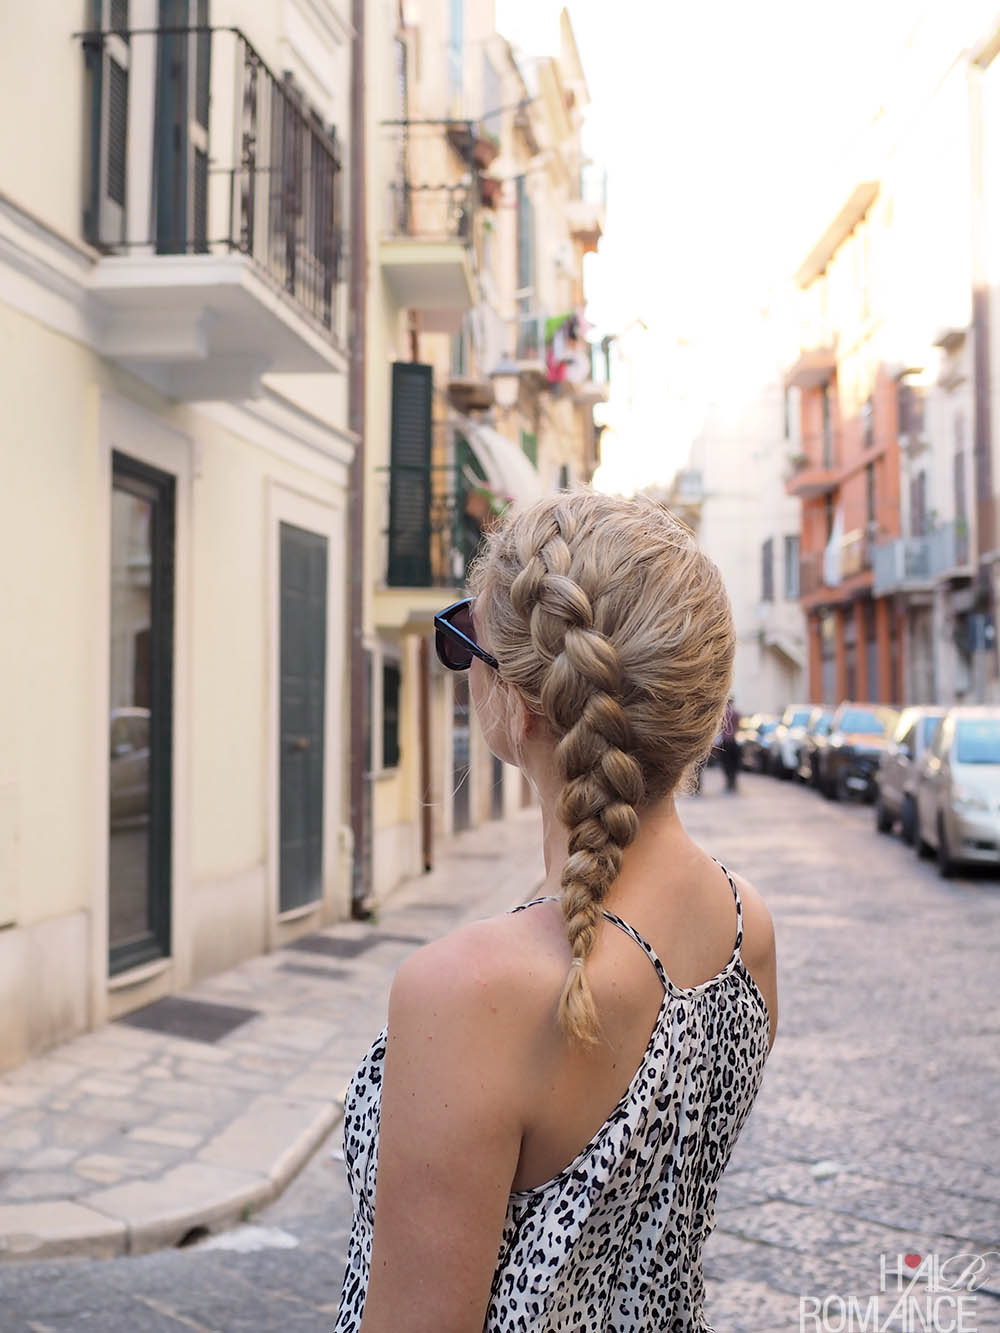 Hair Romance - Ciao bella! - Humidity proof hairstyles